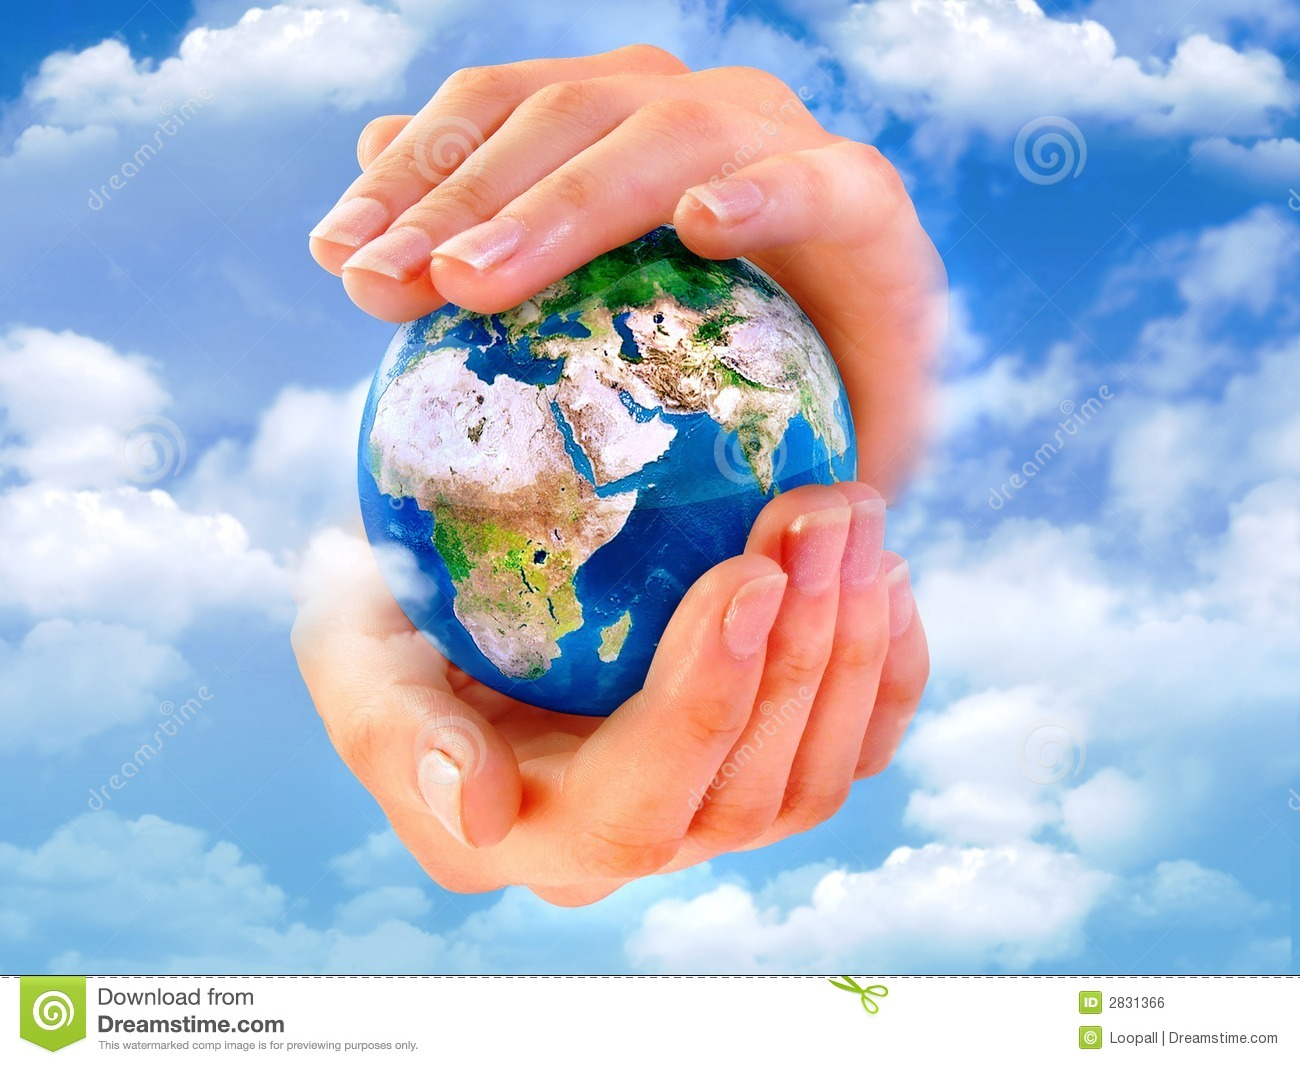 Earth In Hands Royalty Free Stock Image - Image: 2831366